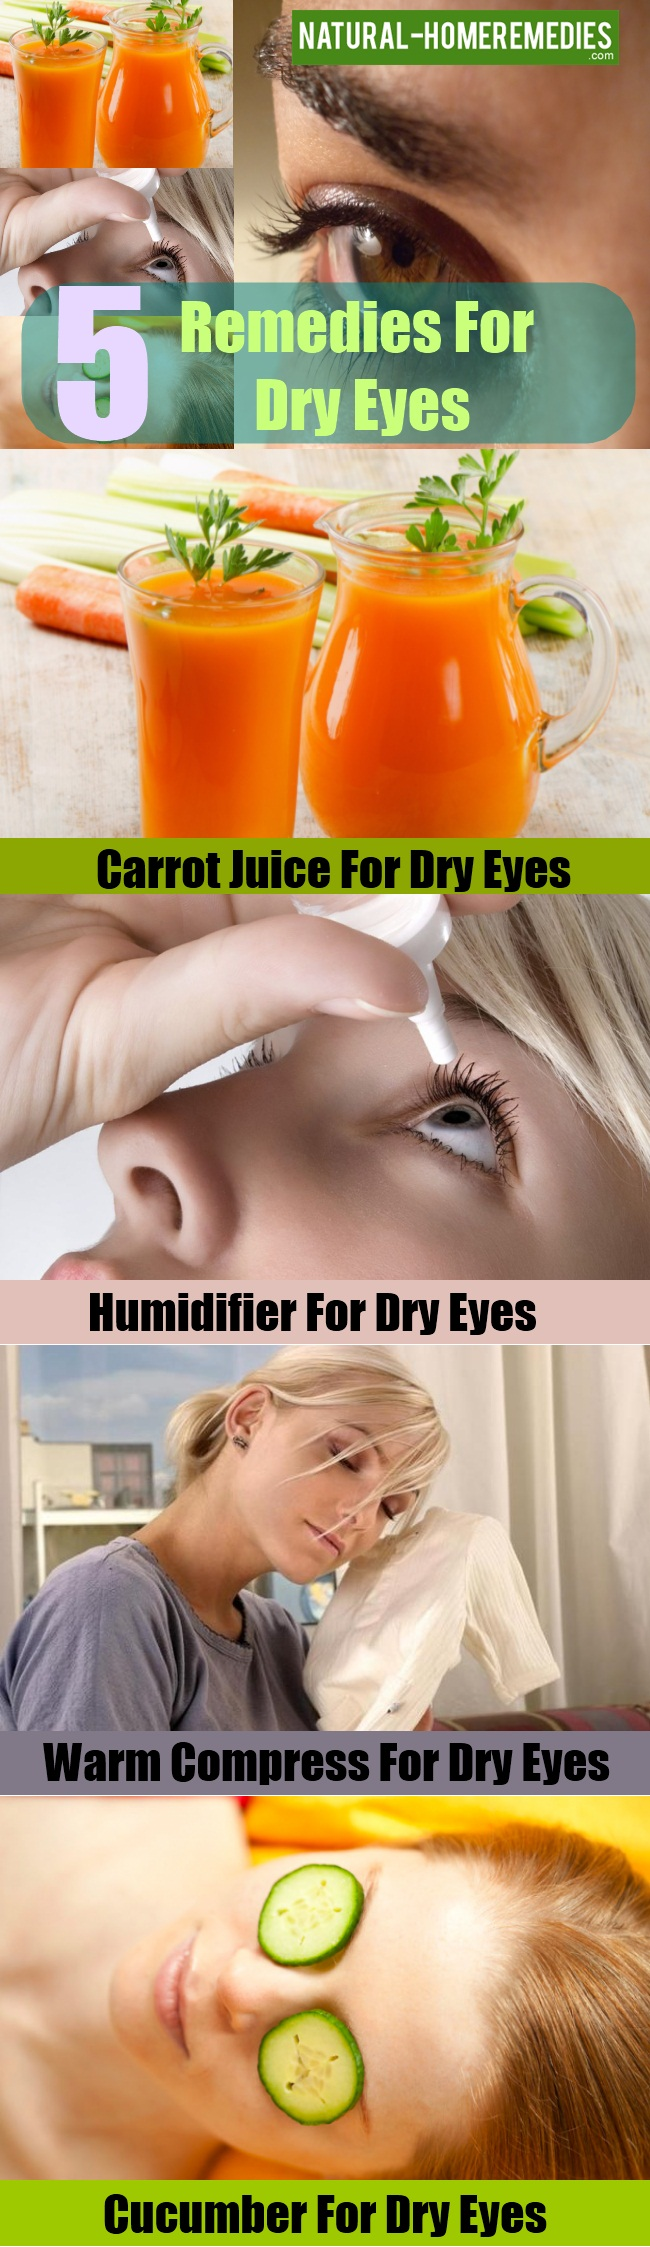 Remedies For Dry Eyes